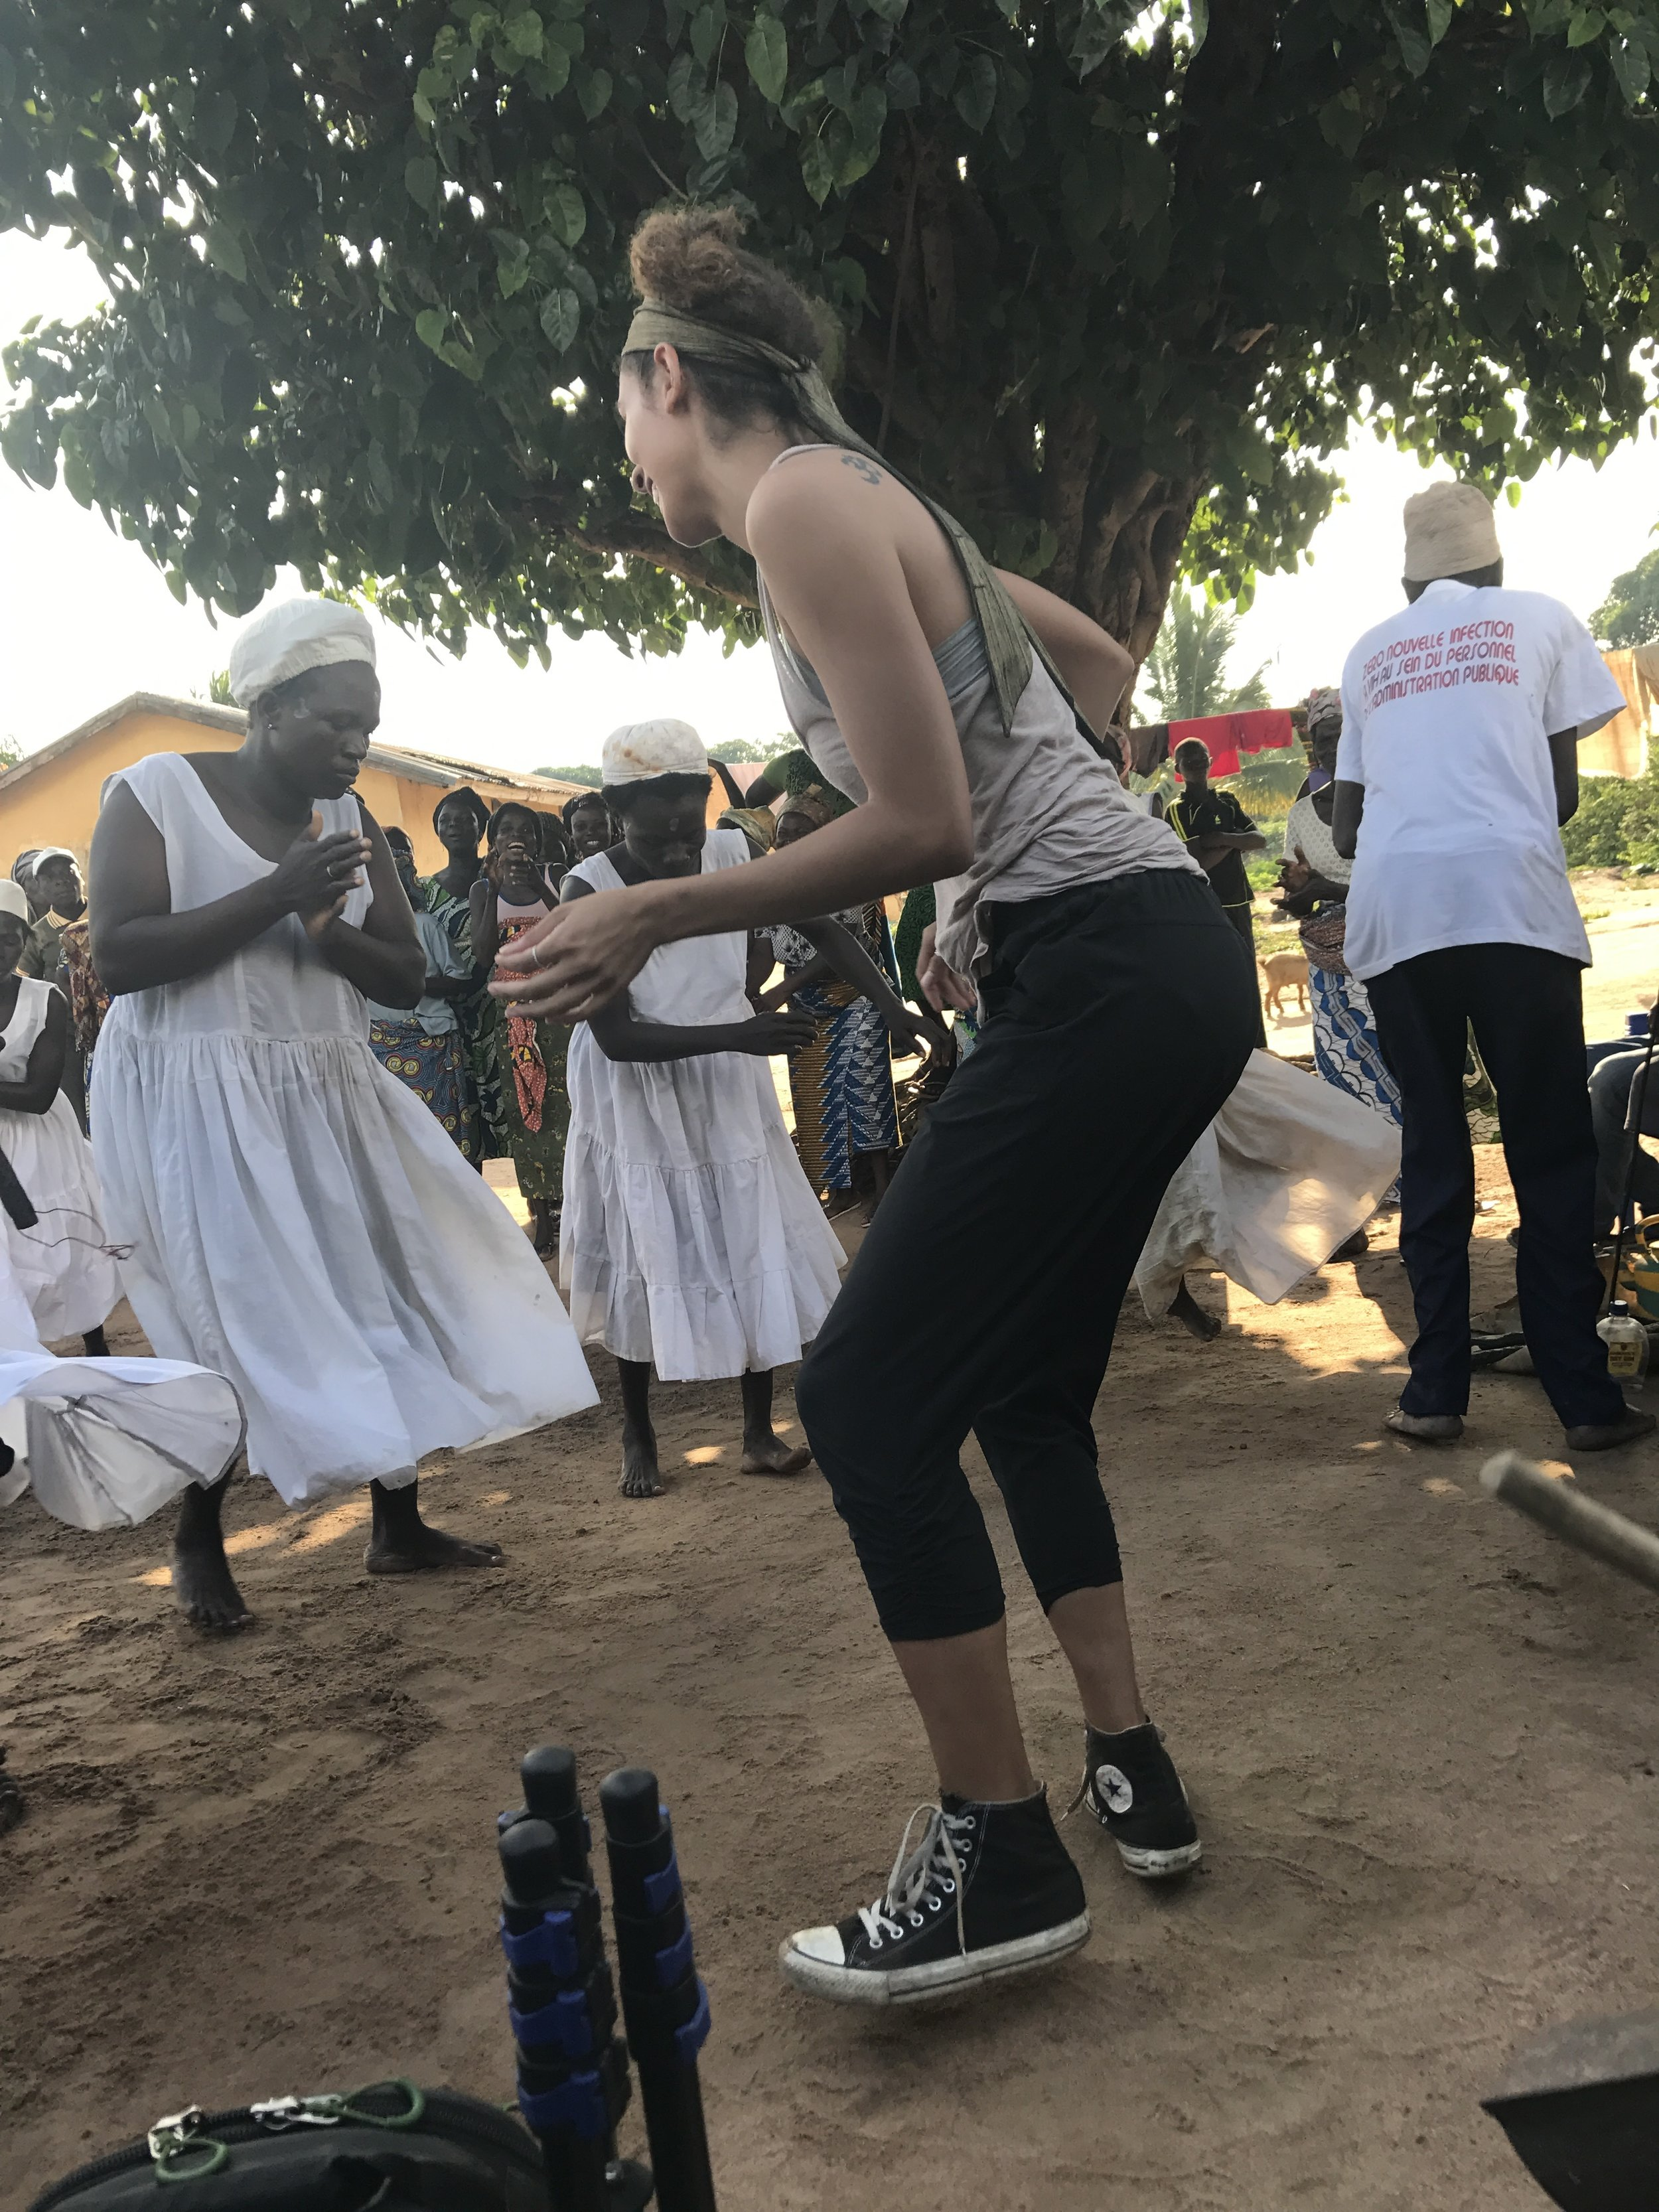 Dancing with a villages Fetishes (spiritual women)